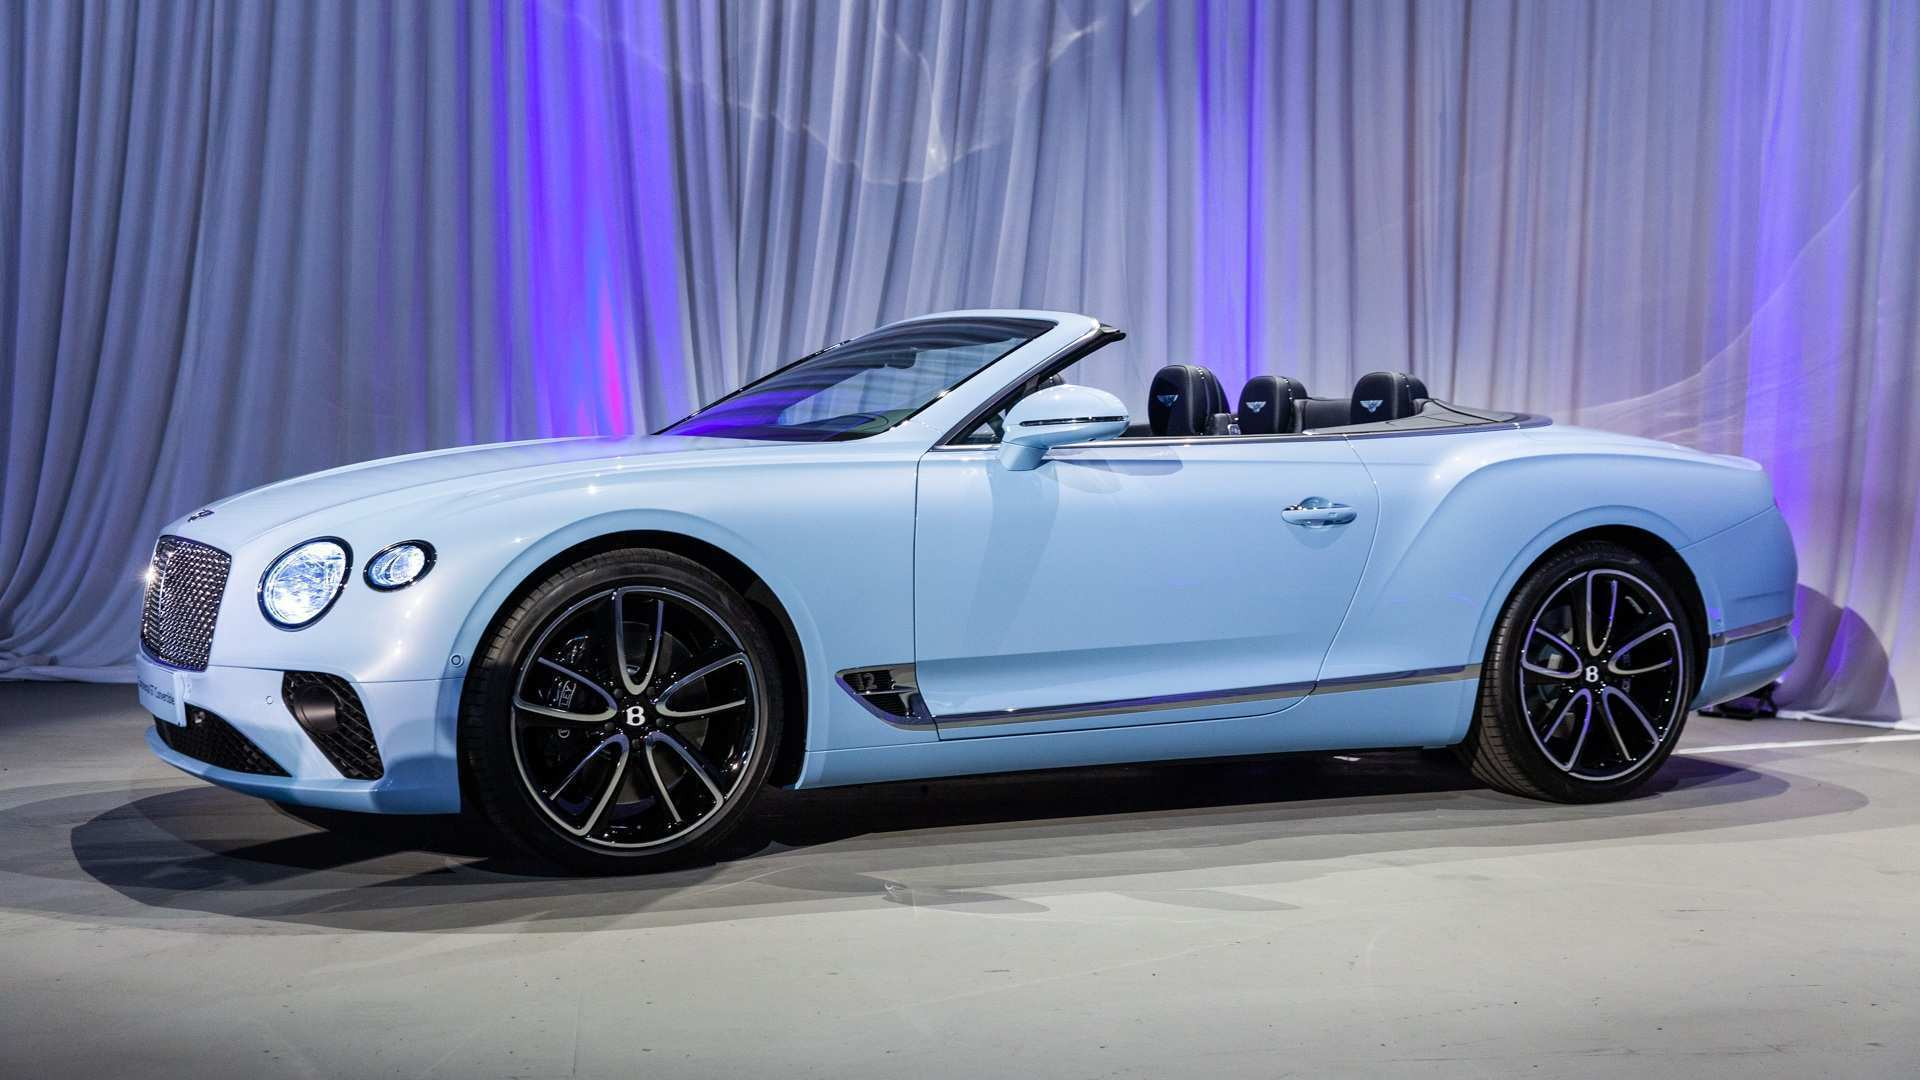 17 All New 2020 Bentley Gtc Pricing by 2020 Bentley Gtc